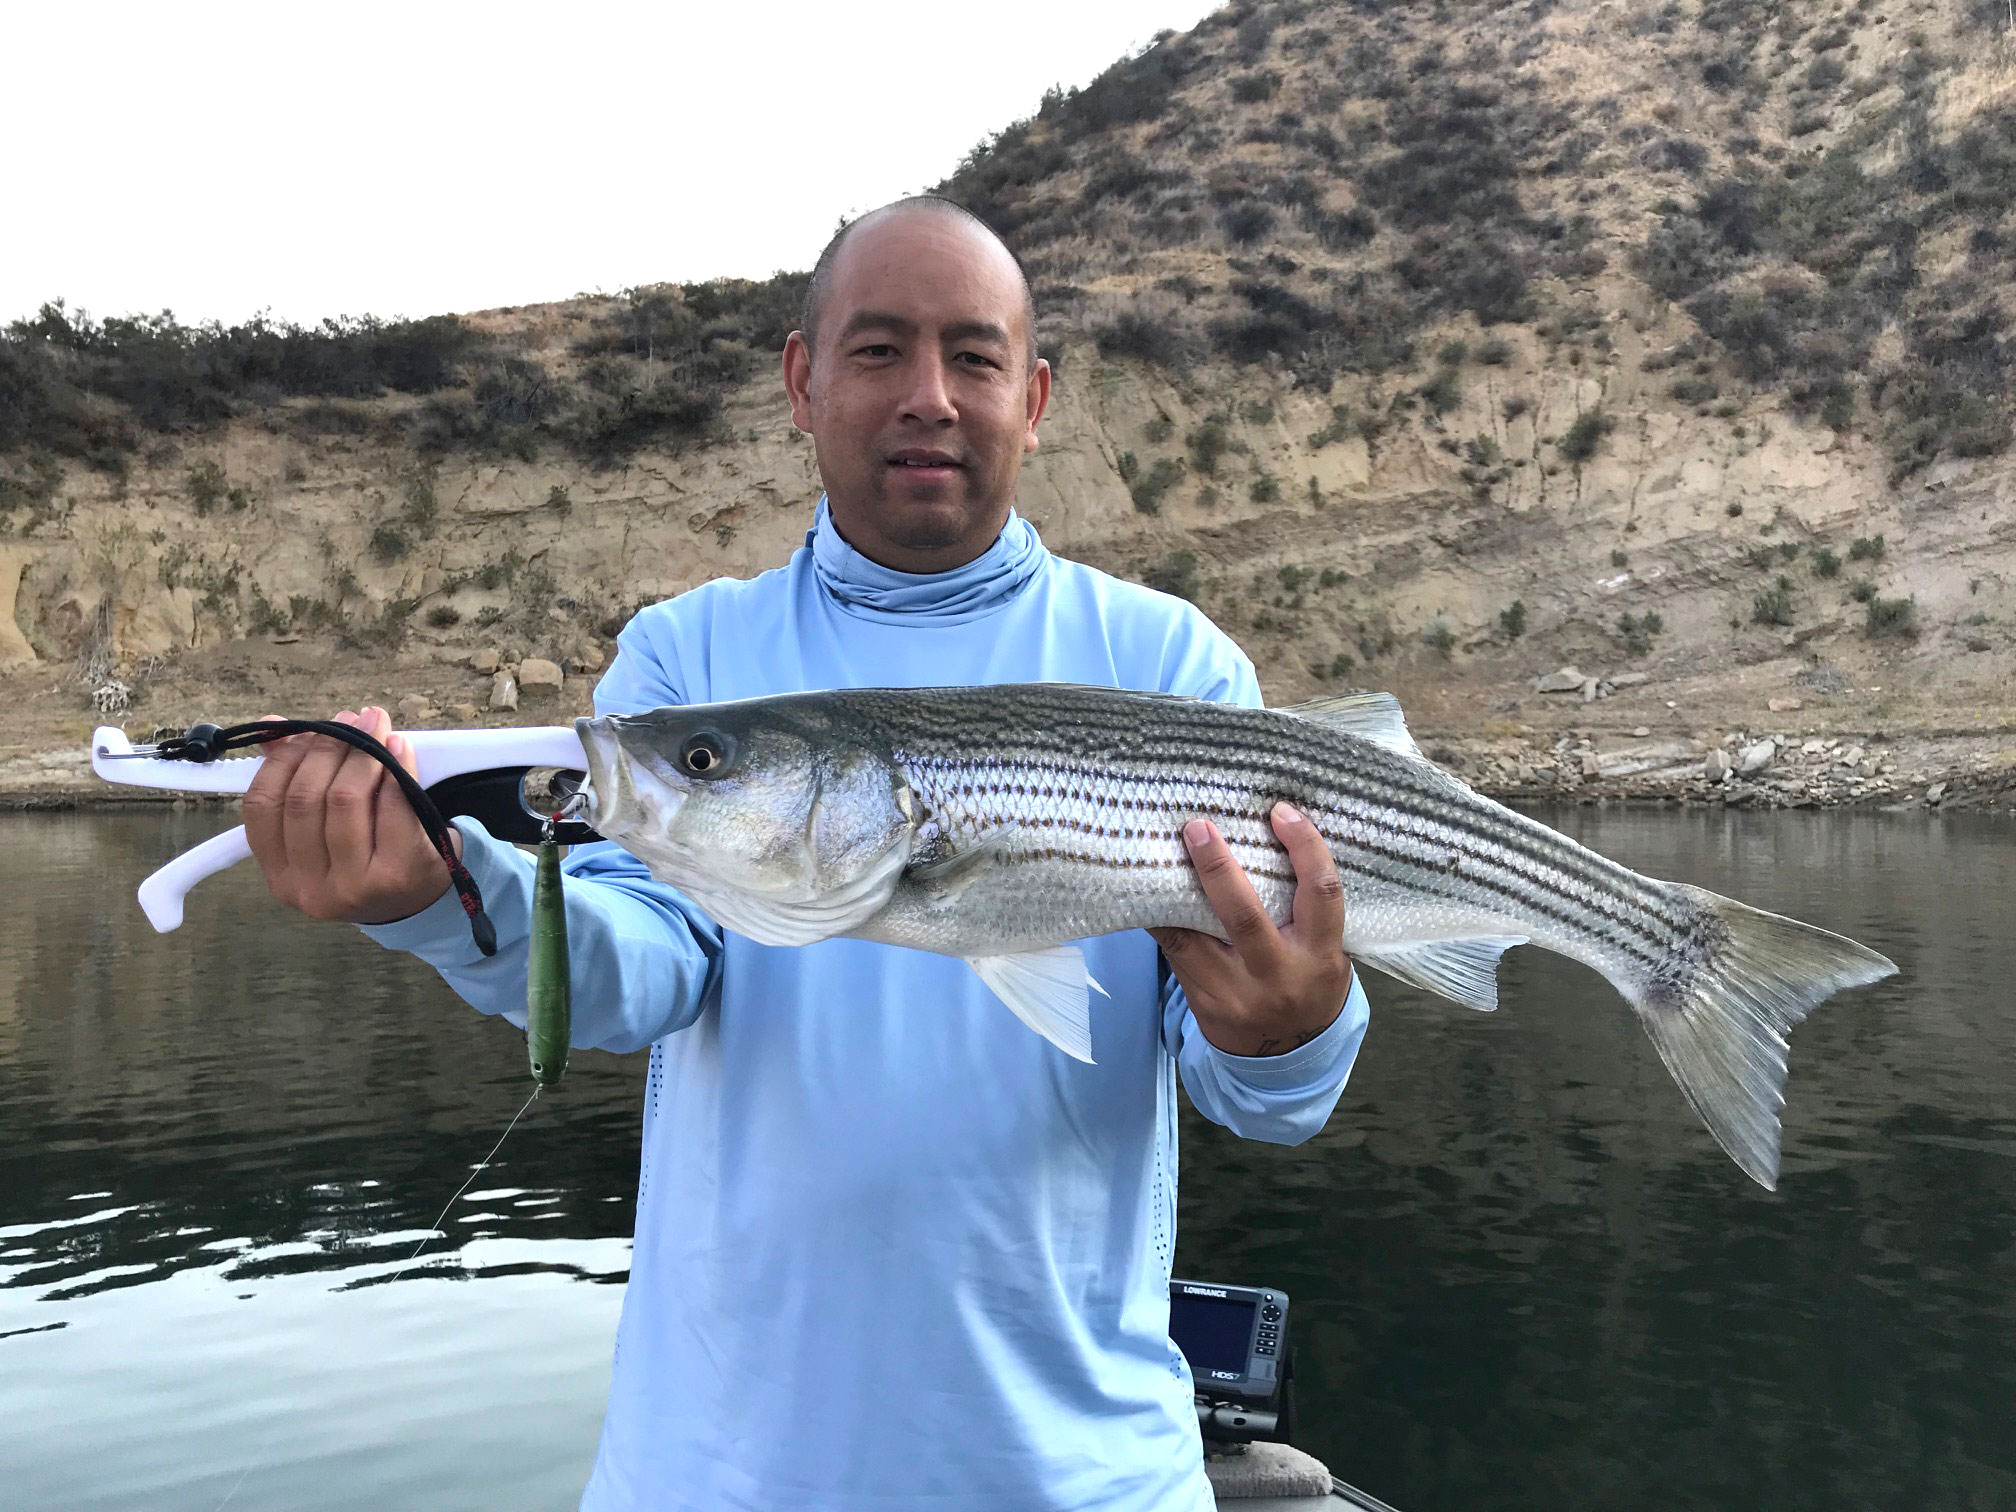 Castaic - Trophy Technology